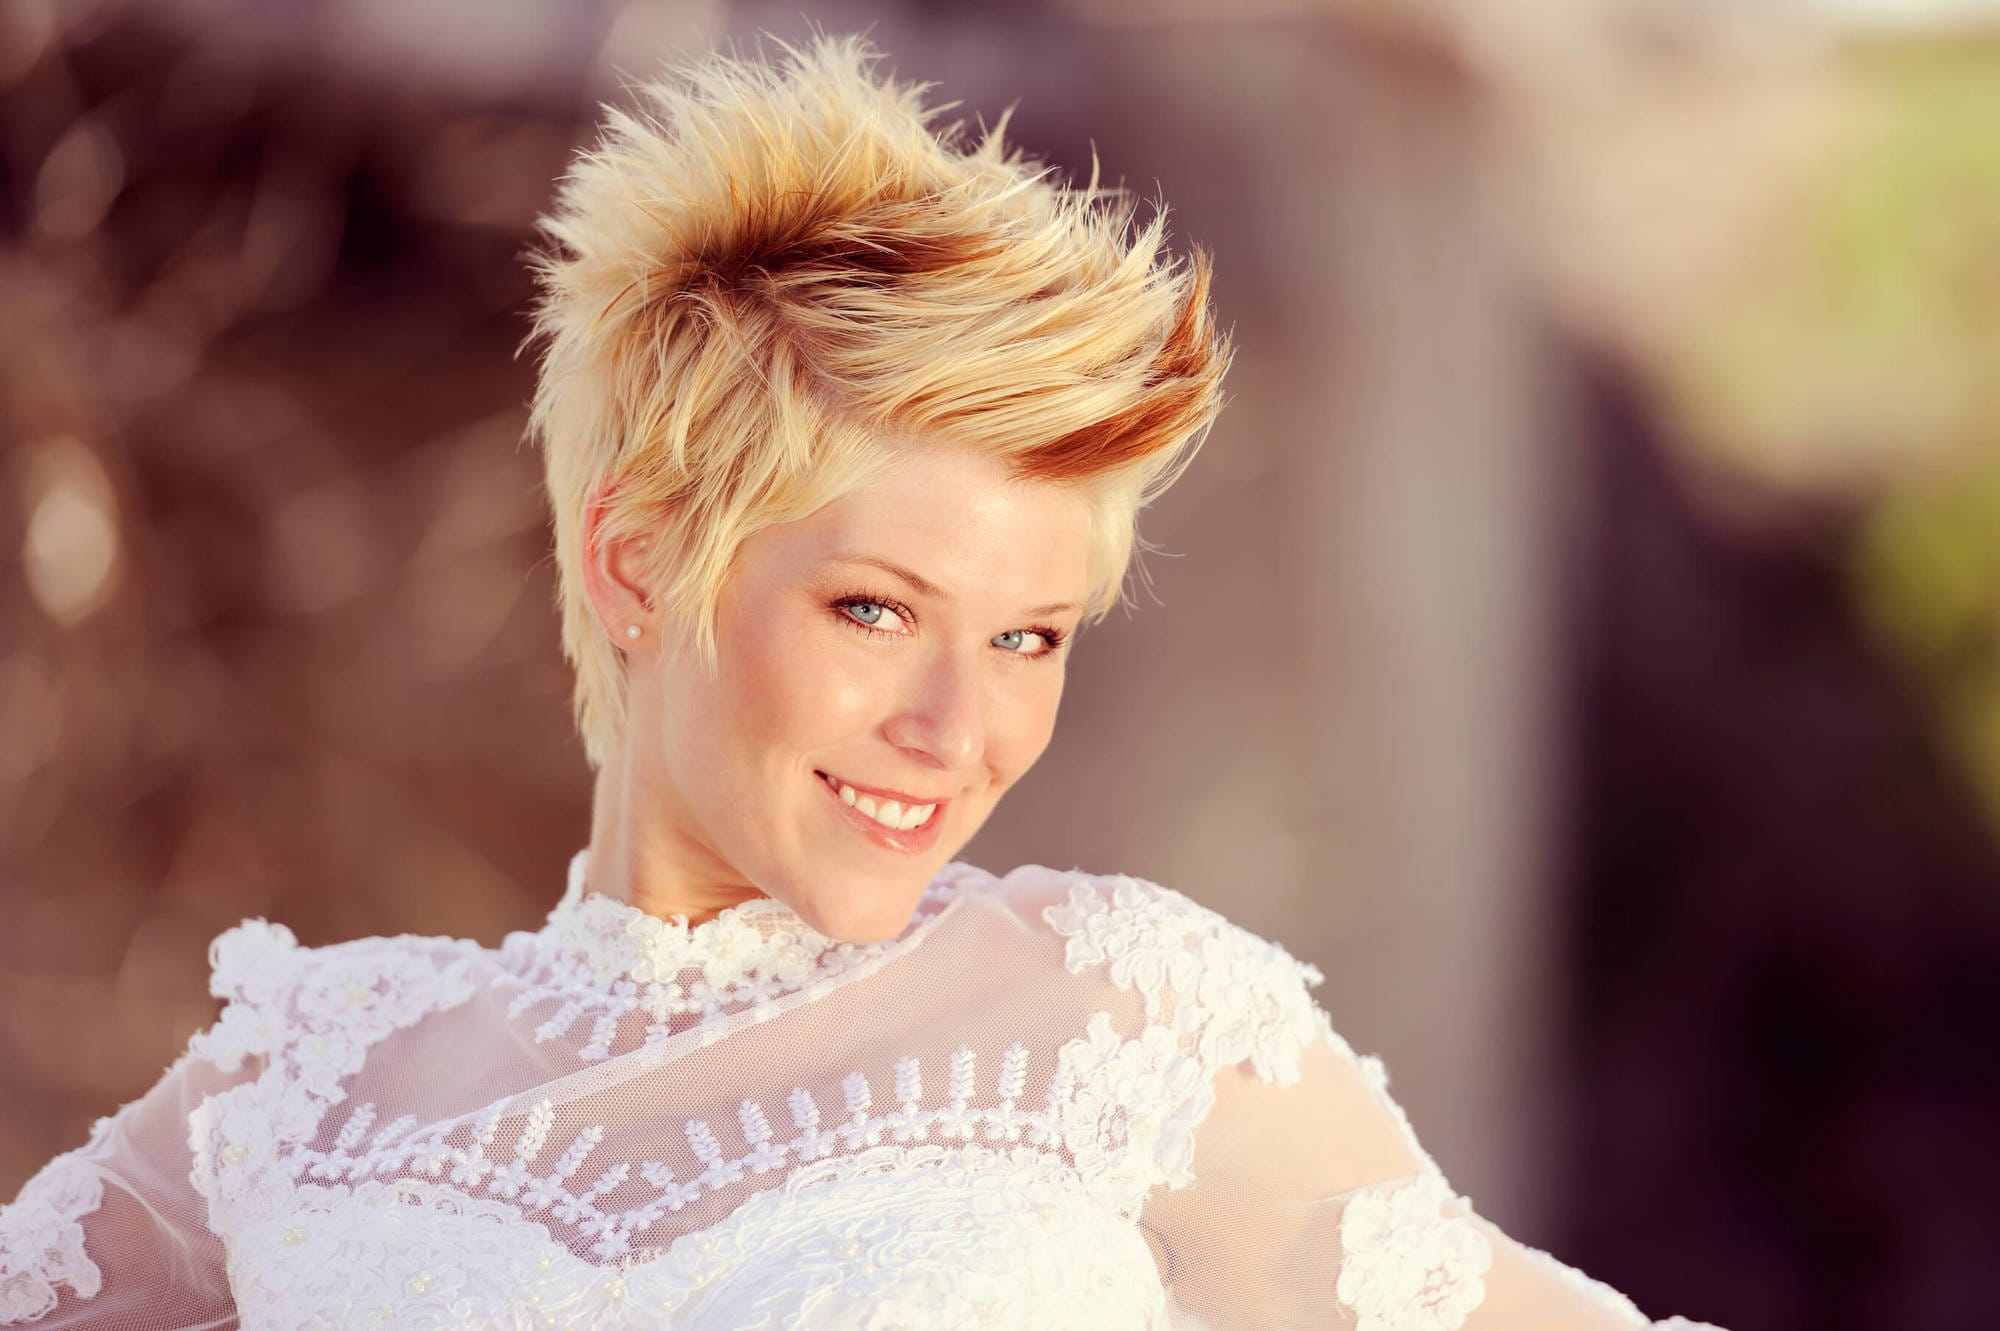 short spiky haircuts can be worn to special events, as this model shows.